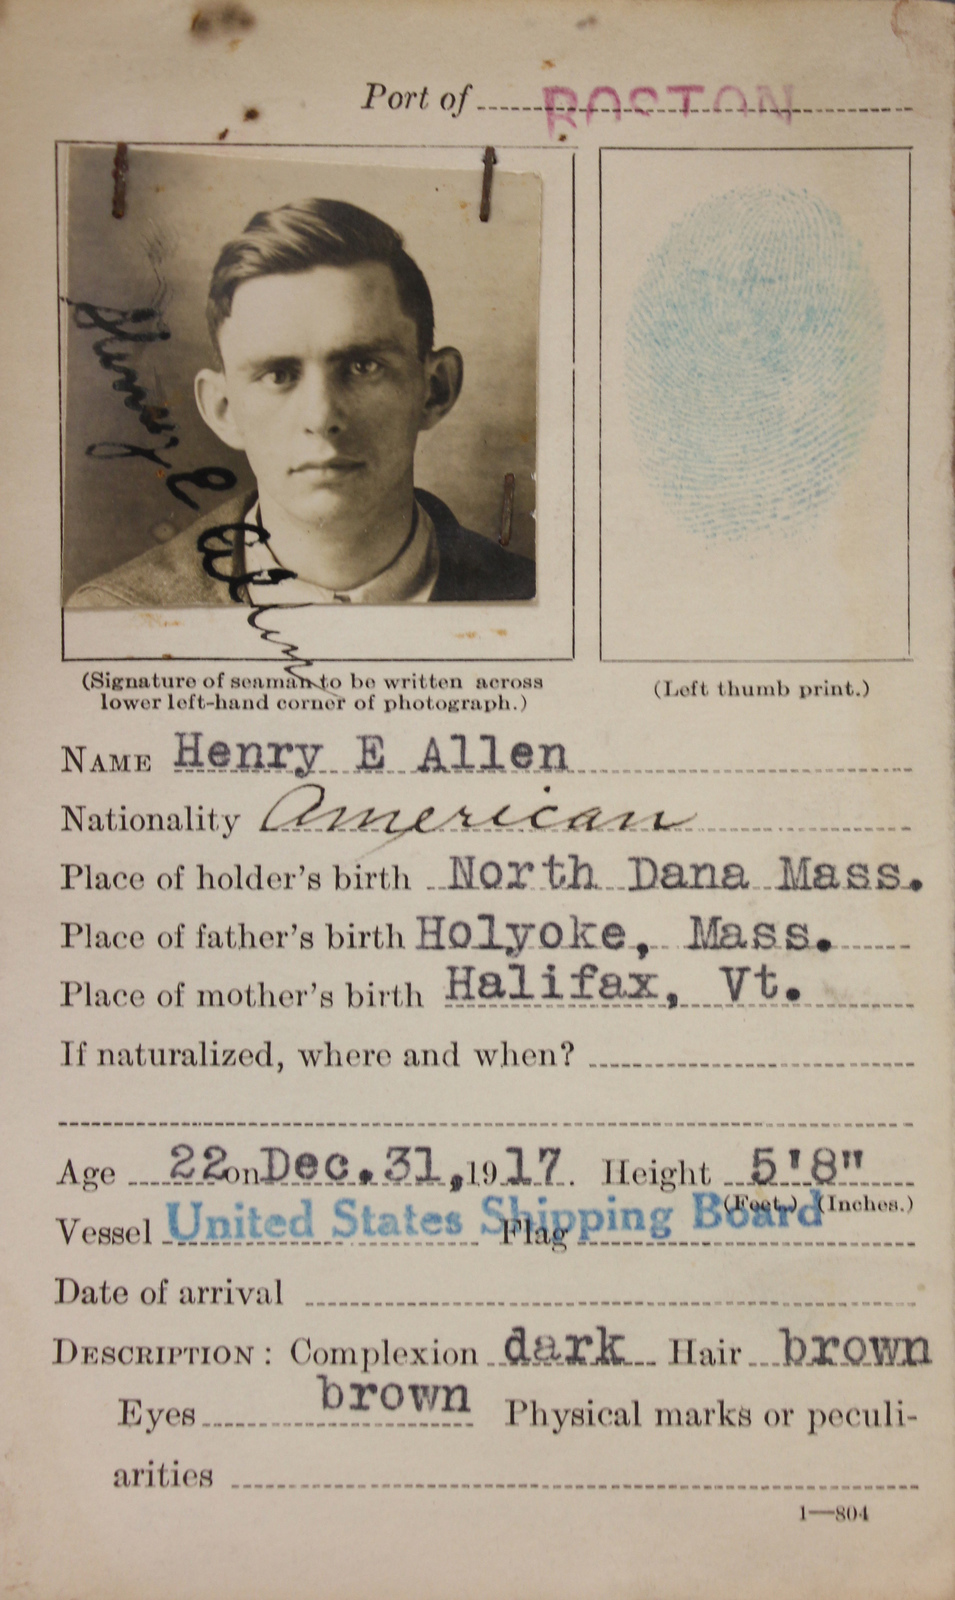 Seamen's Identification Card for Henry E  Allen - U S